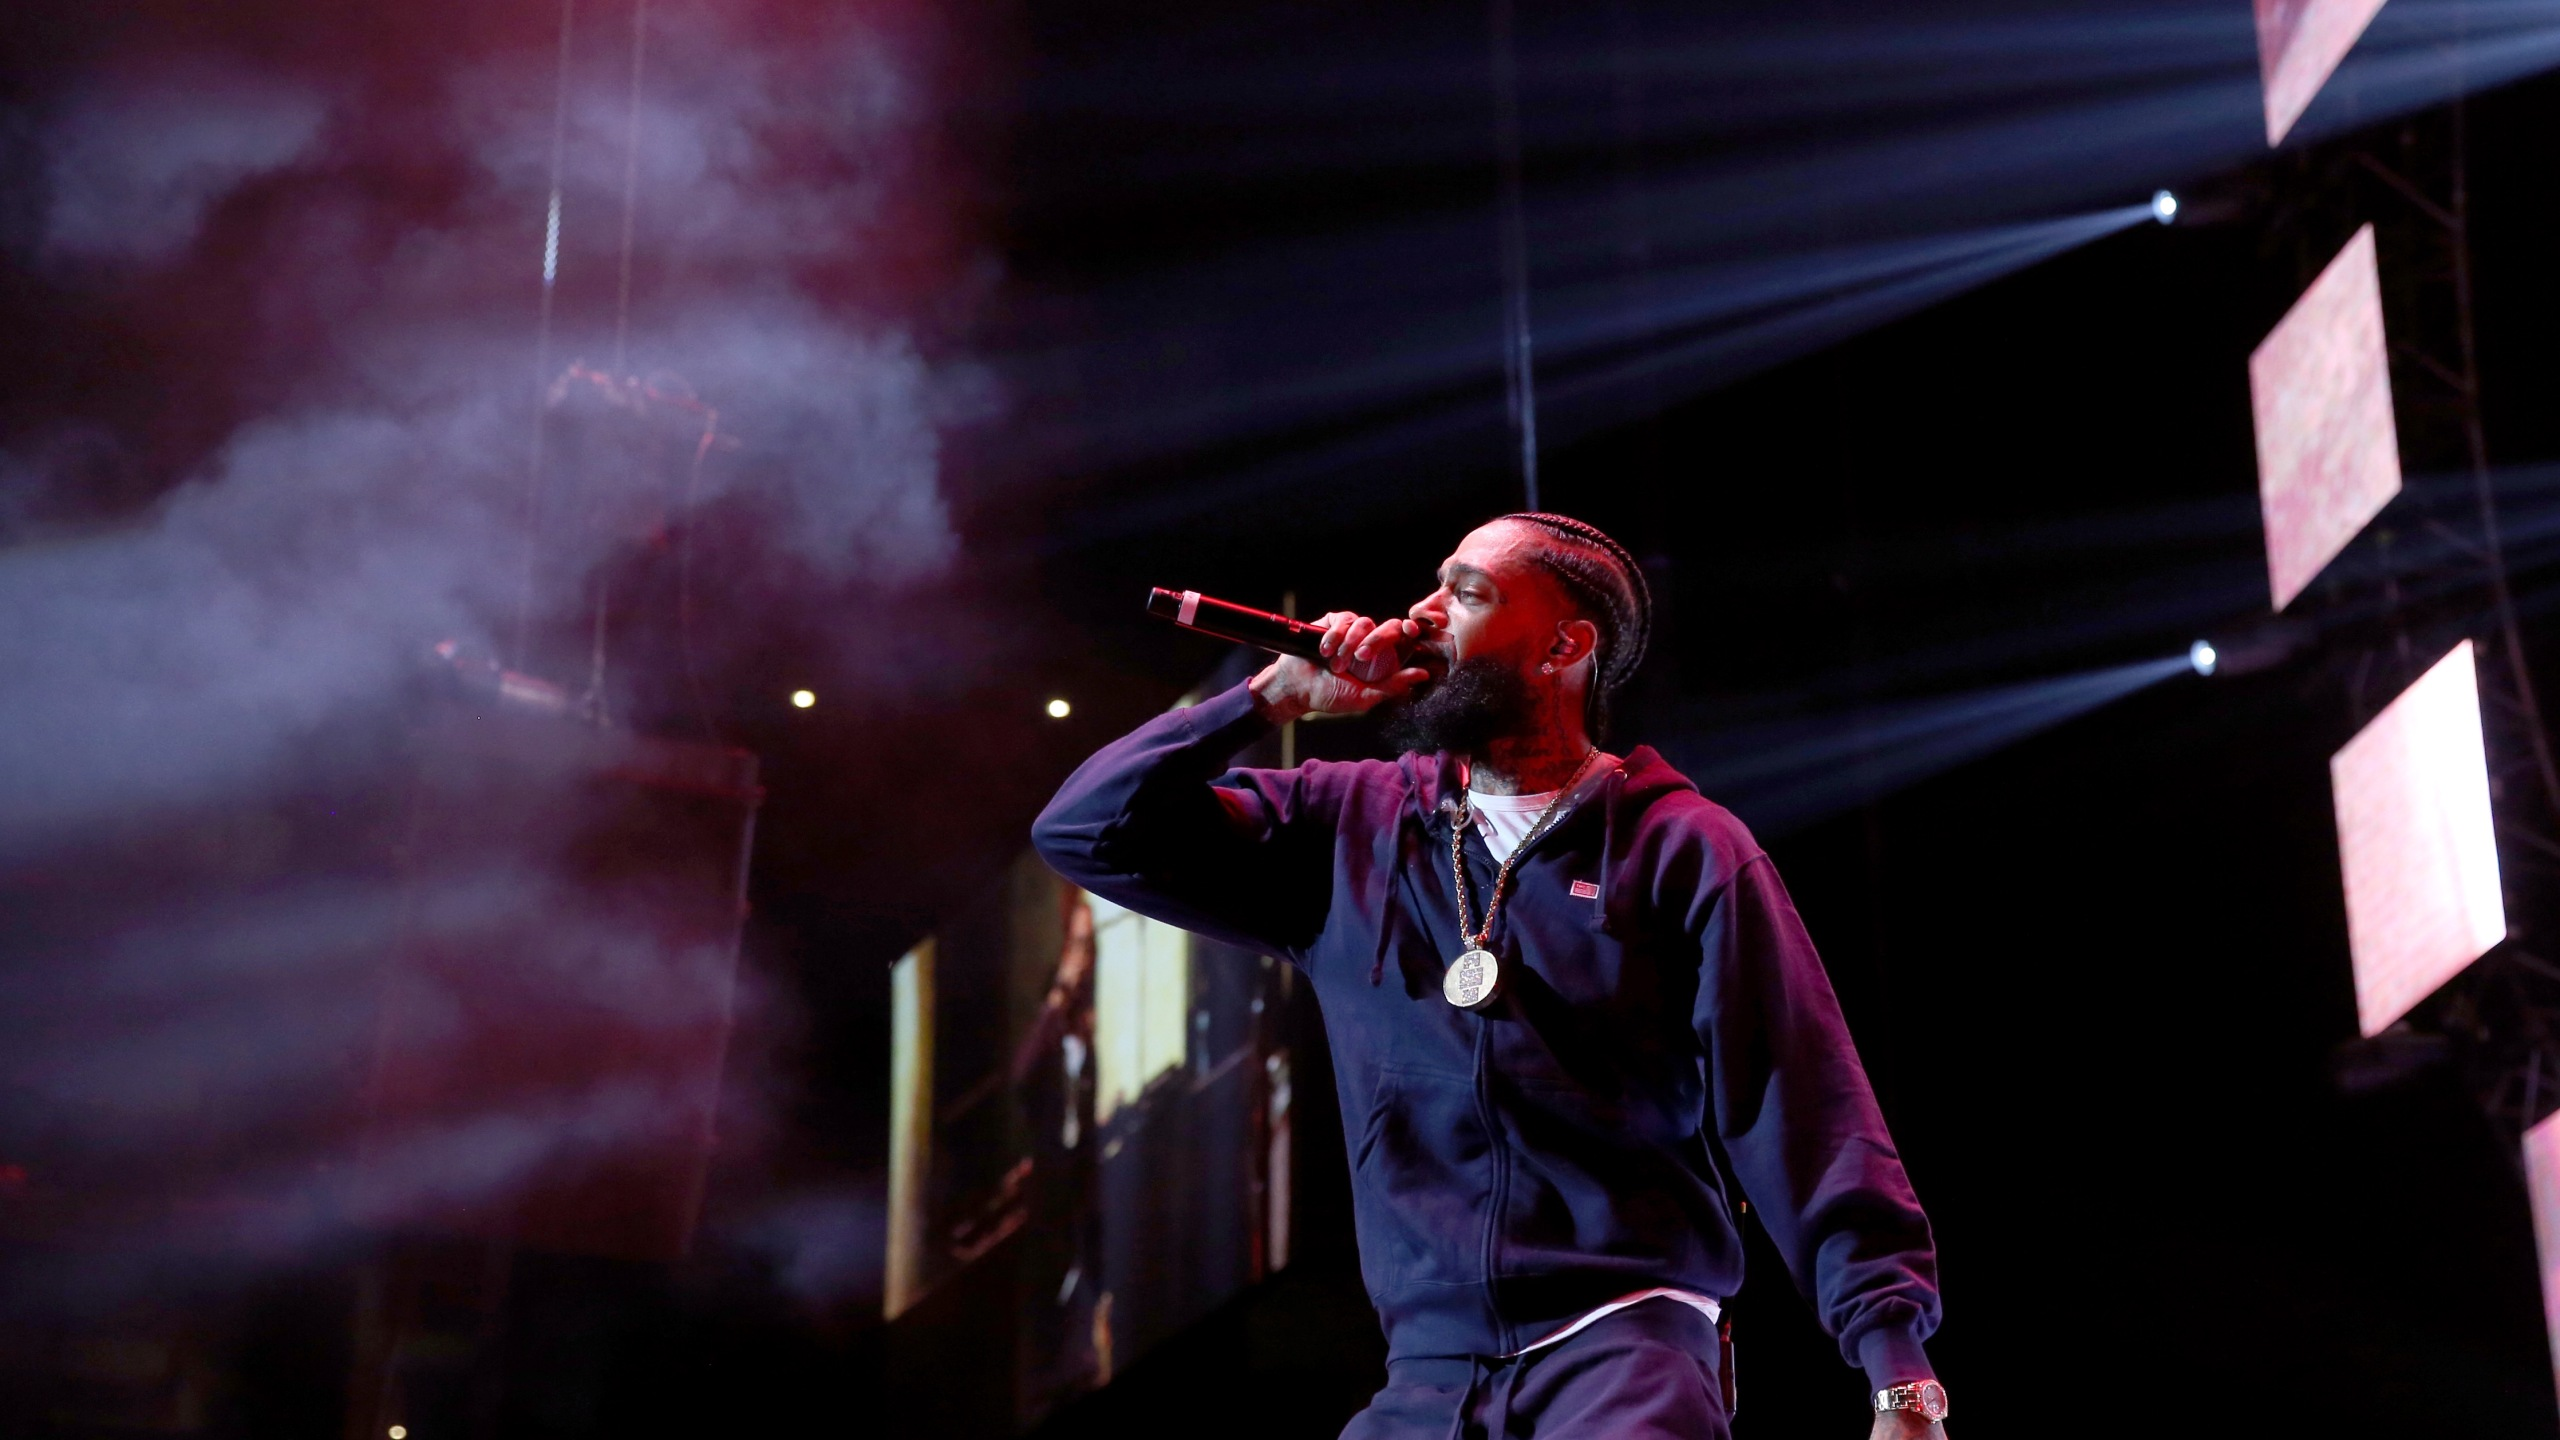 Nipsey Hussle performs onstage at the Staples Center on June 23, 2018, in Los Angeles. (Credit: Bennett Raglin/Getty Images for BET)